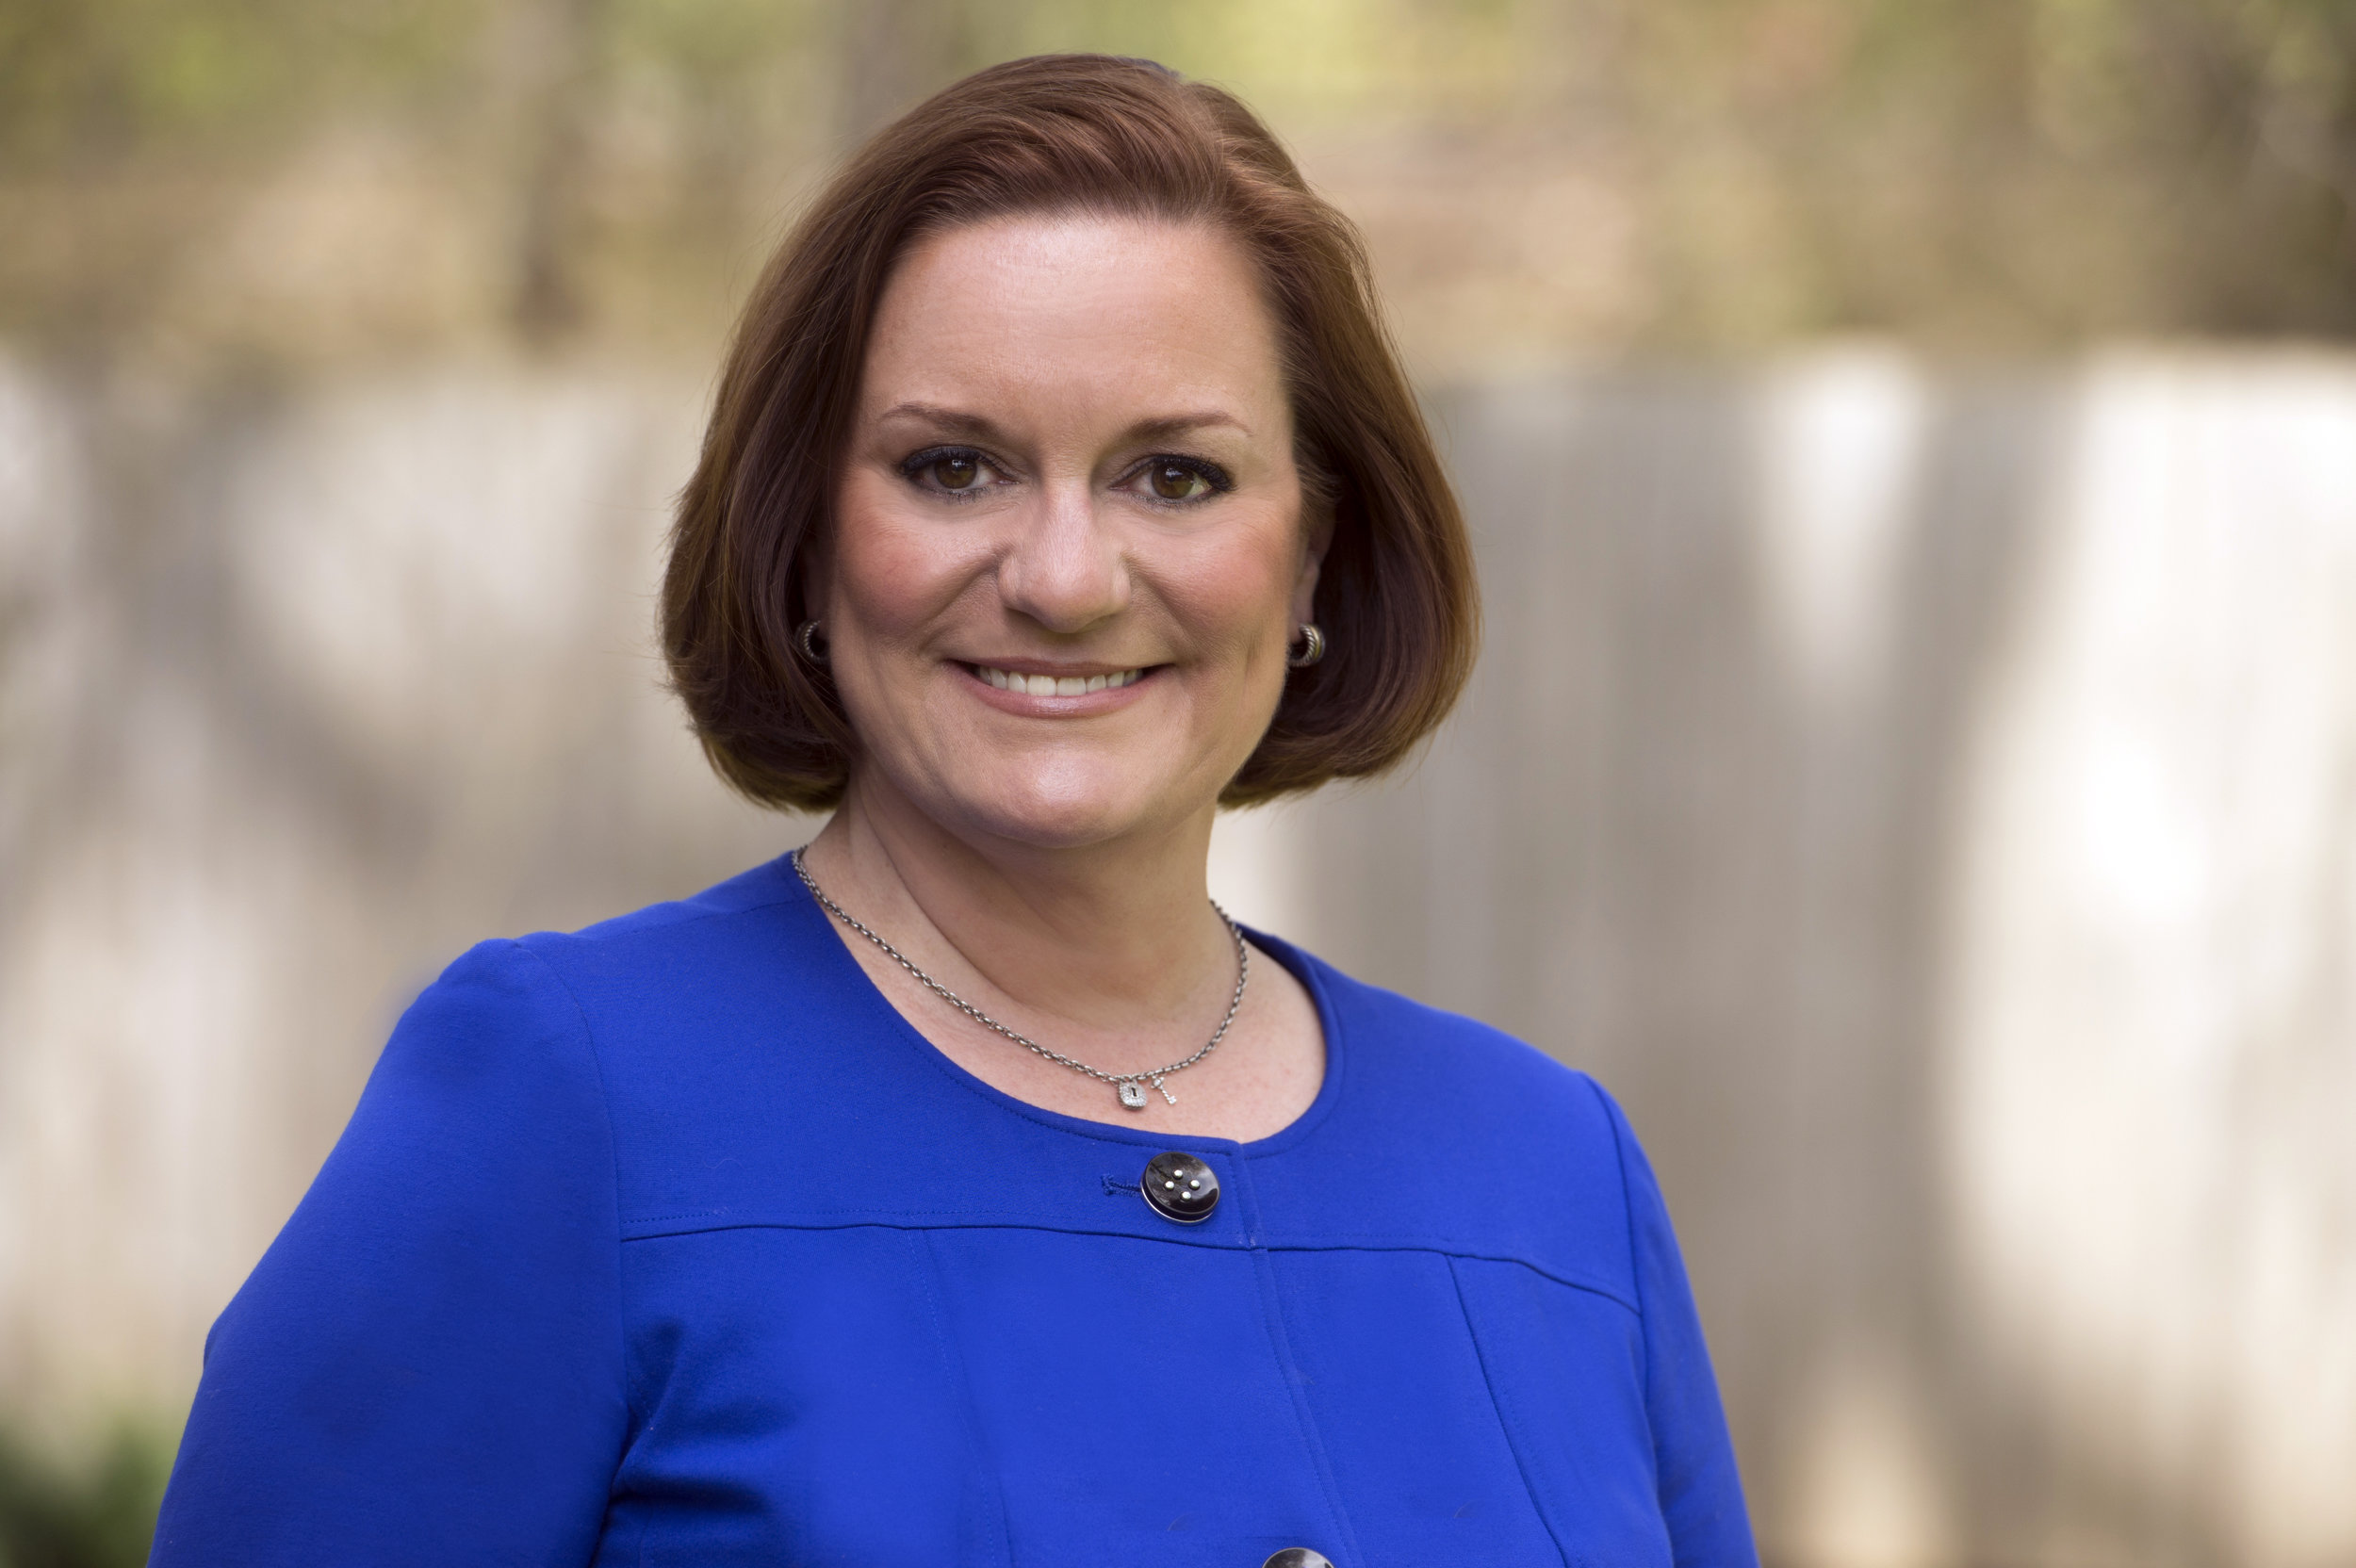 Linda Weber, candidate for New Jersey's 7th Congressional District